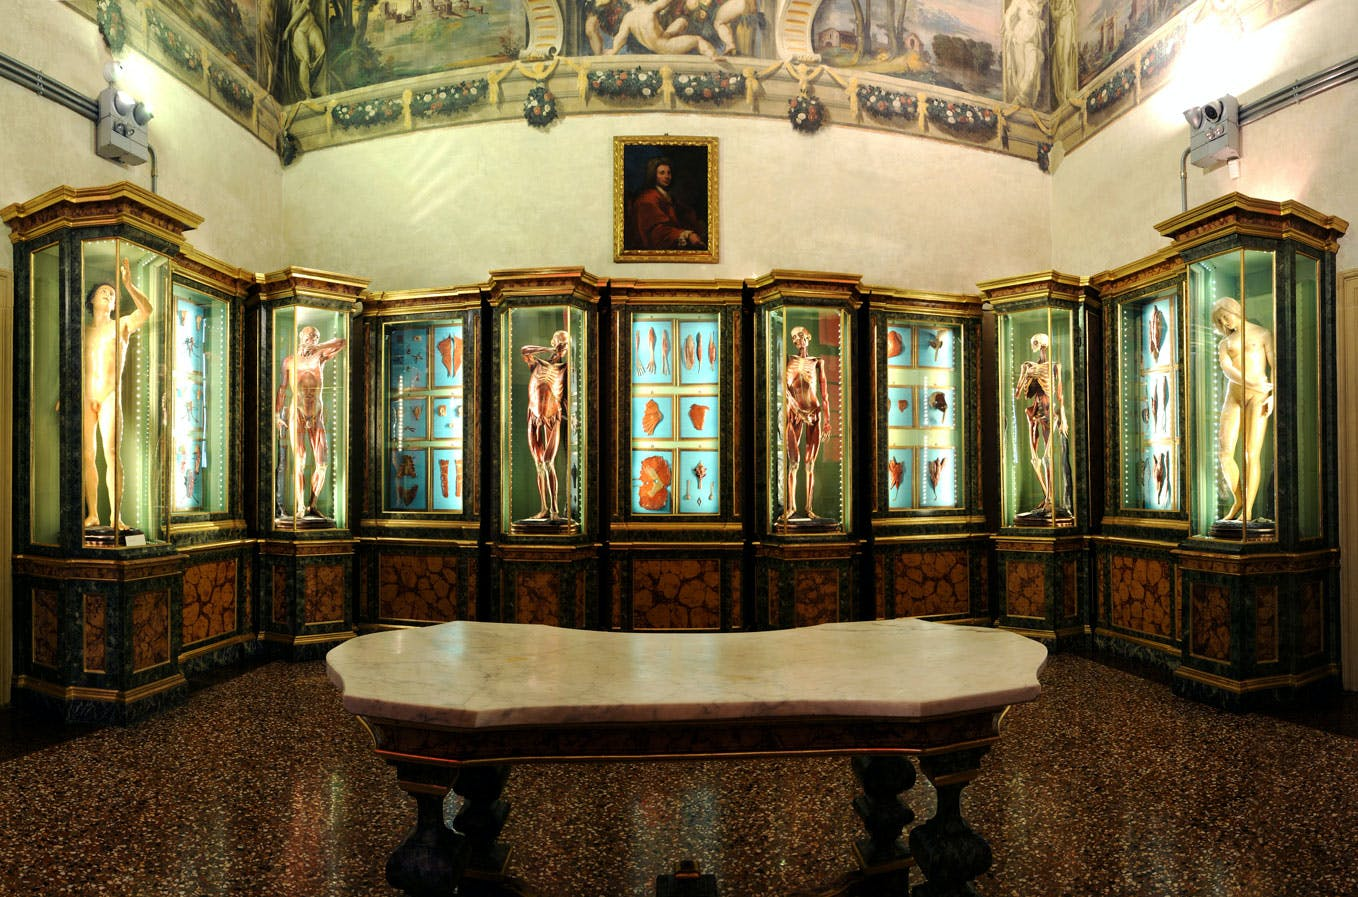 The anatomy room, with figures by Ercole Lelli, in the Palazzo Poggi, Bologna